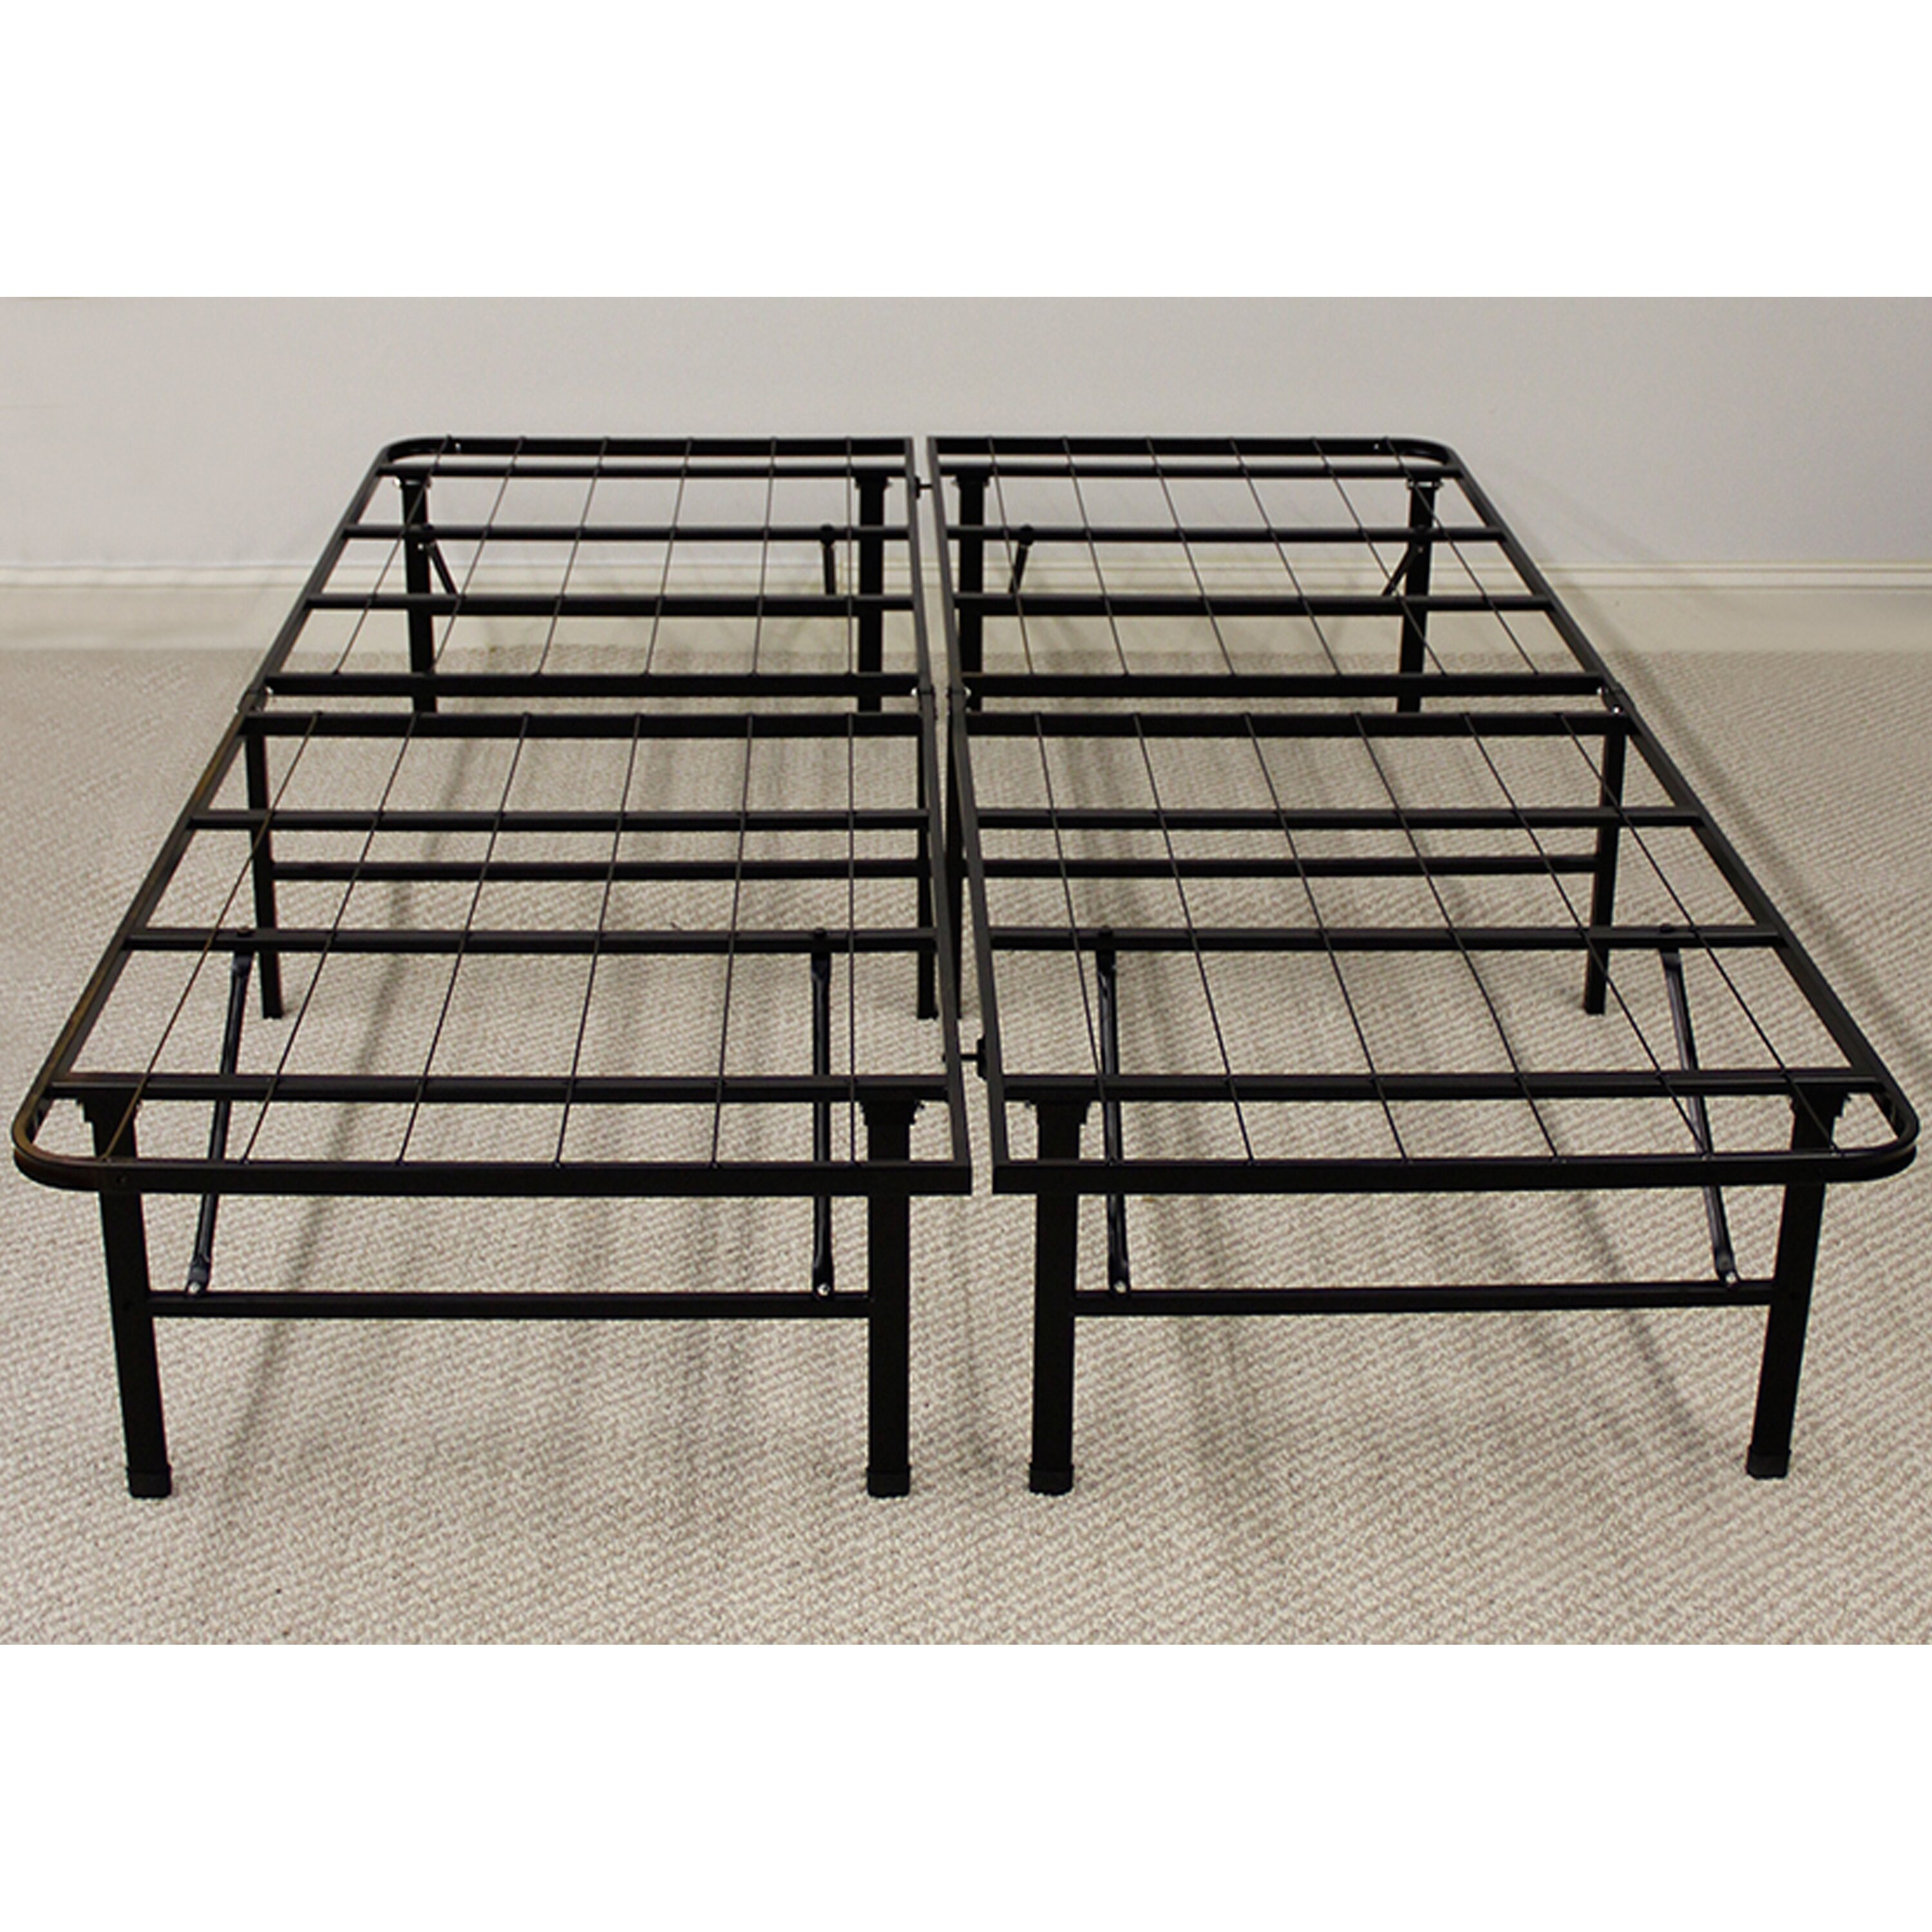 anew edit 14 platform heavy duty metal bed frame